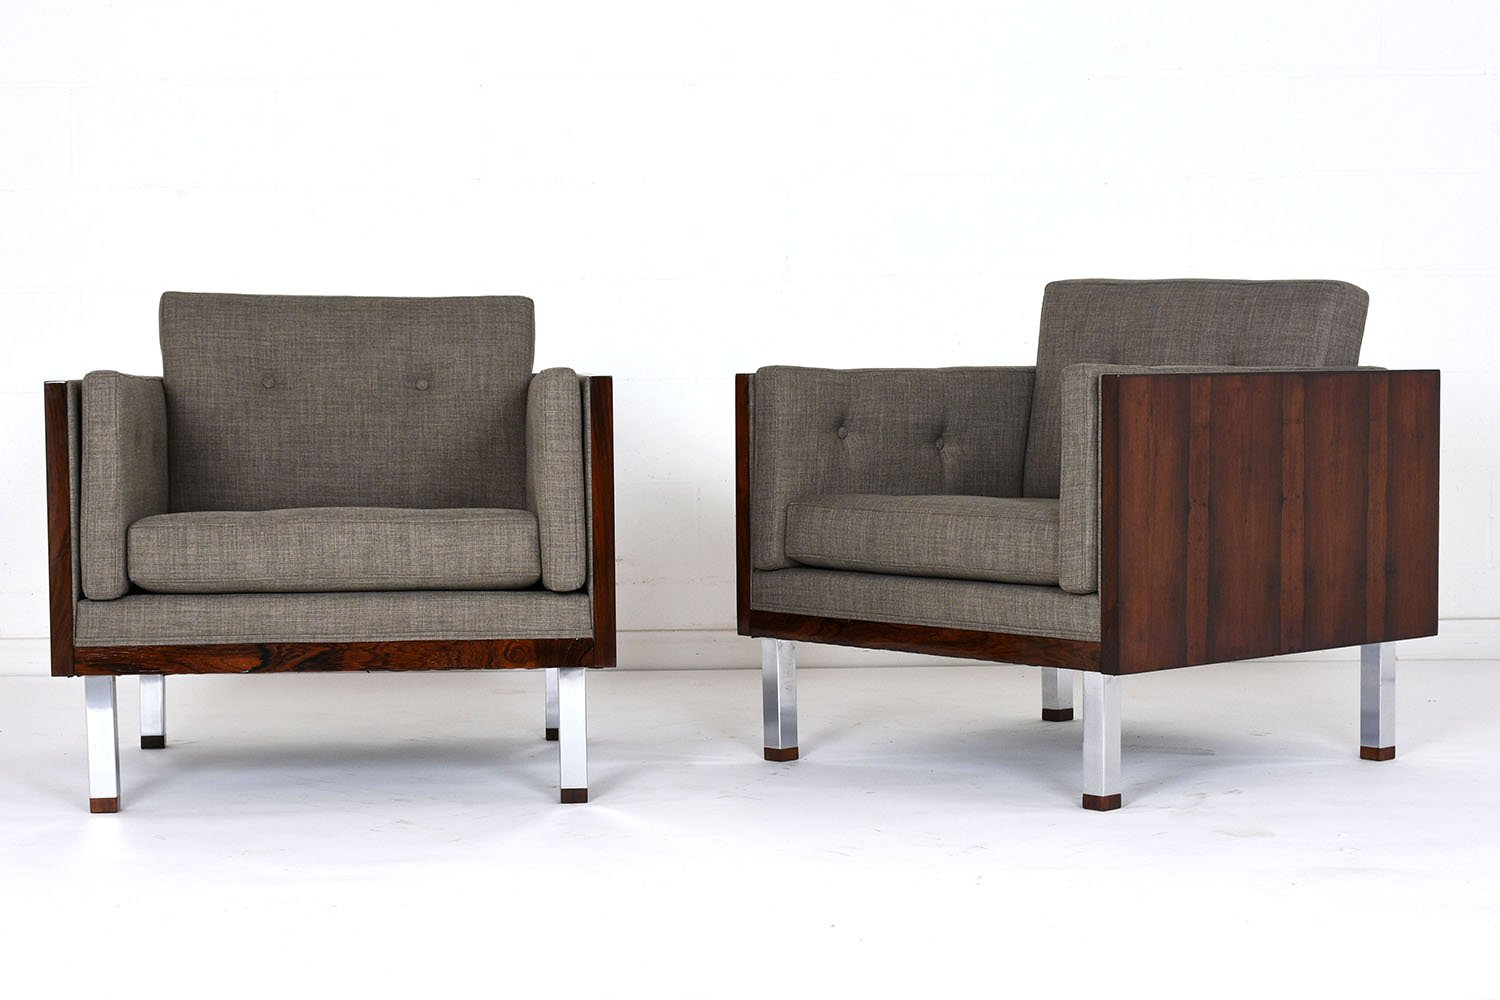 Lounge Chairs by Jydsk Mobelvaerk, 1960s, Set of 2 for sale at Pamono